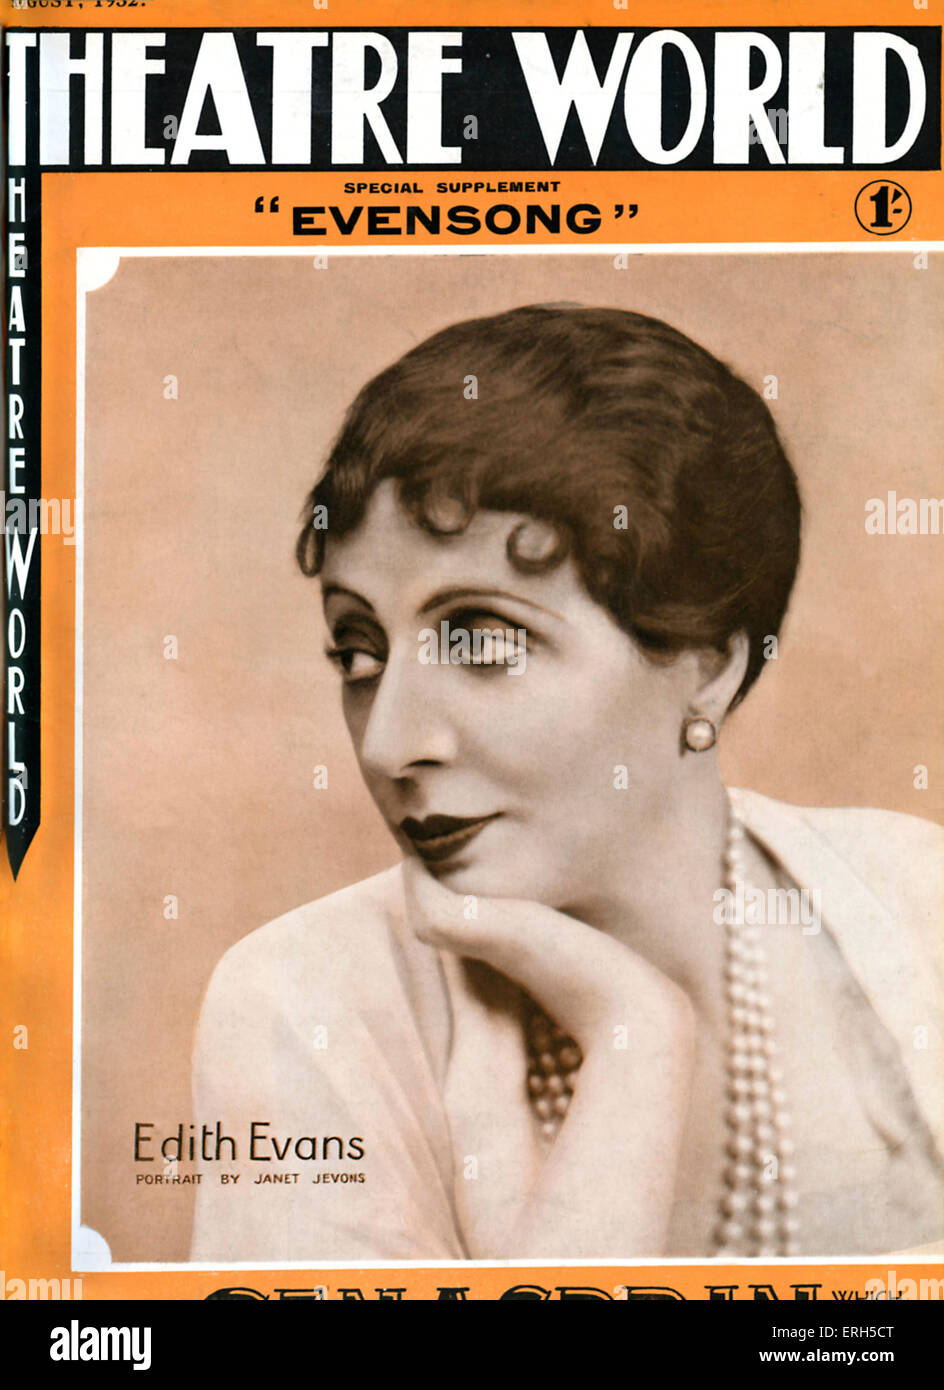 Watch Edith Evans ?stage and film roles video